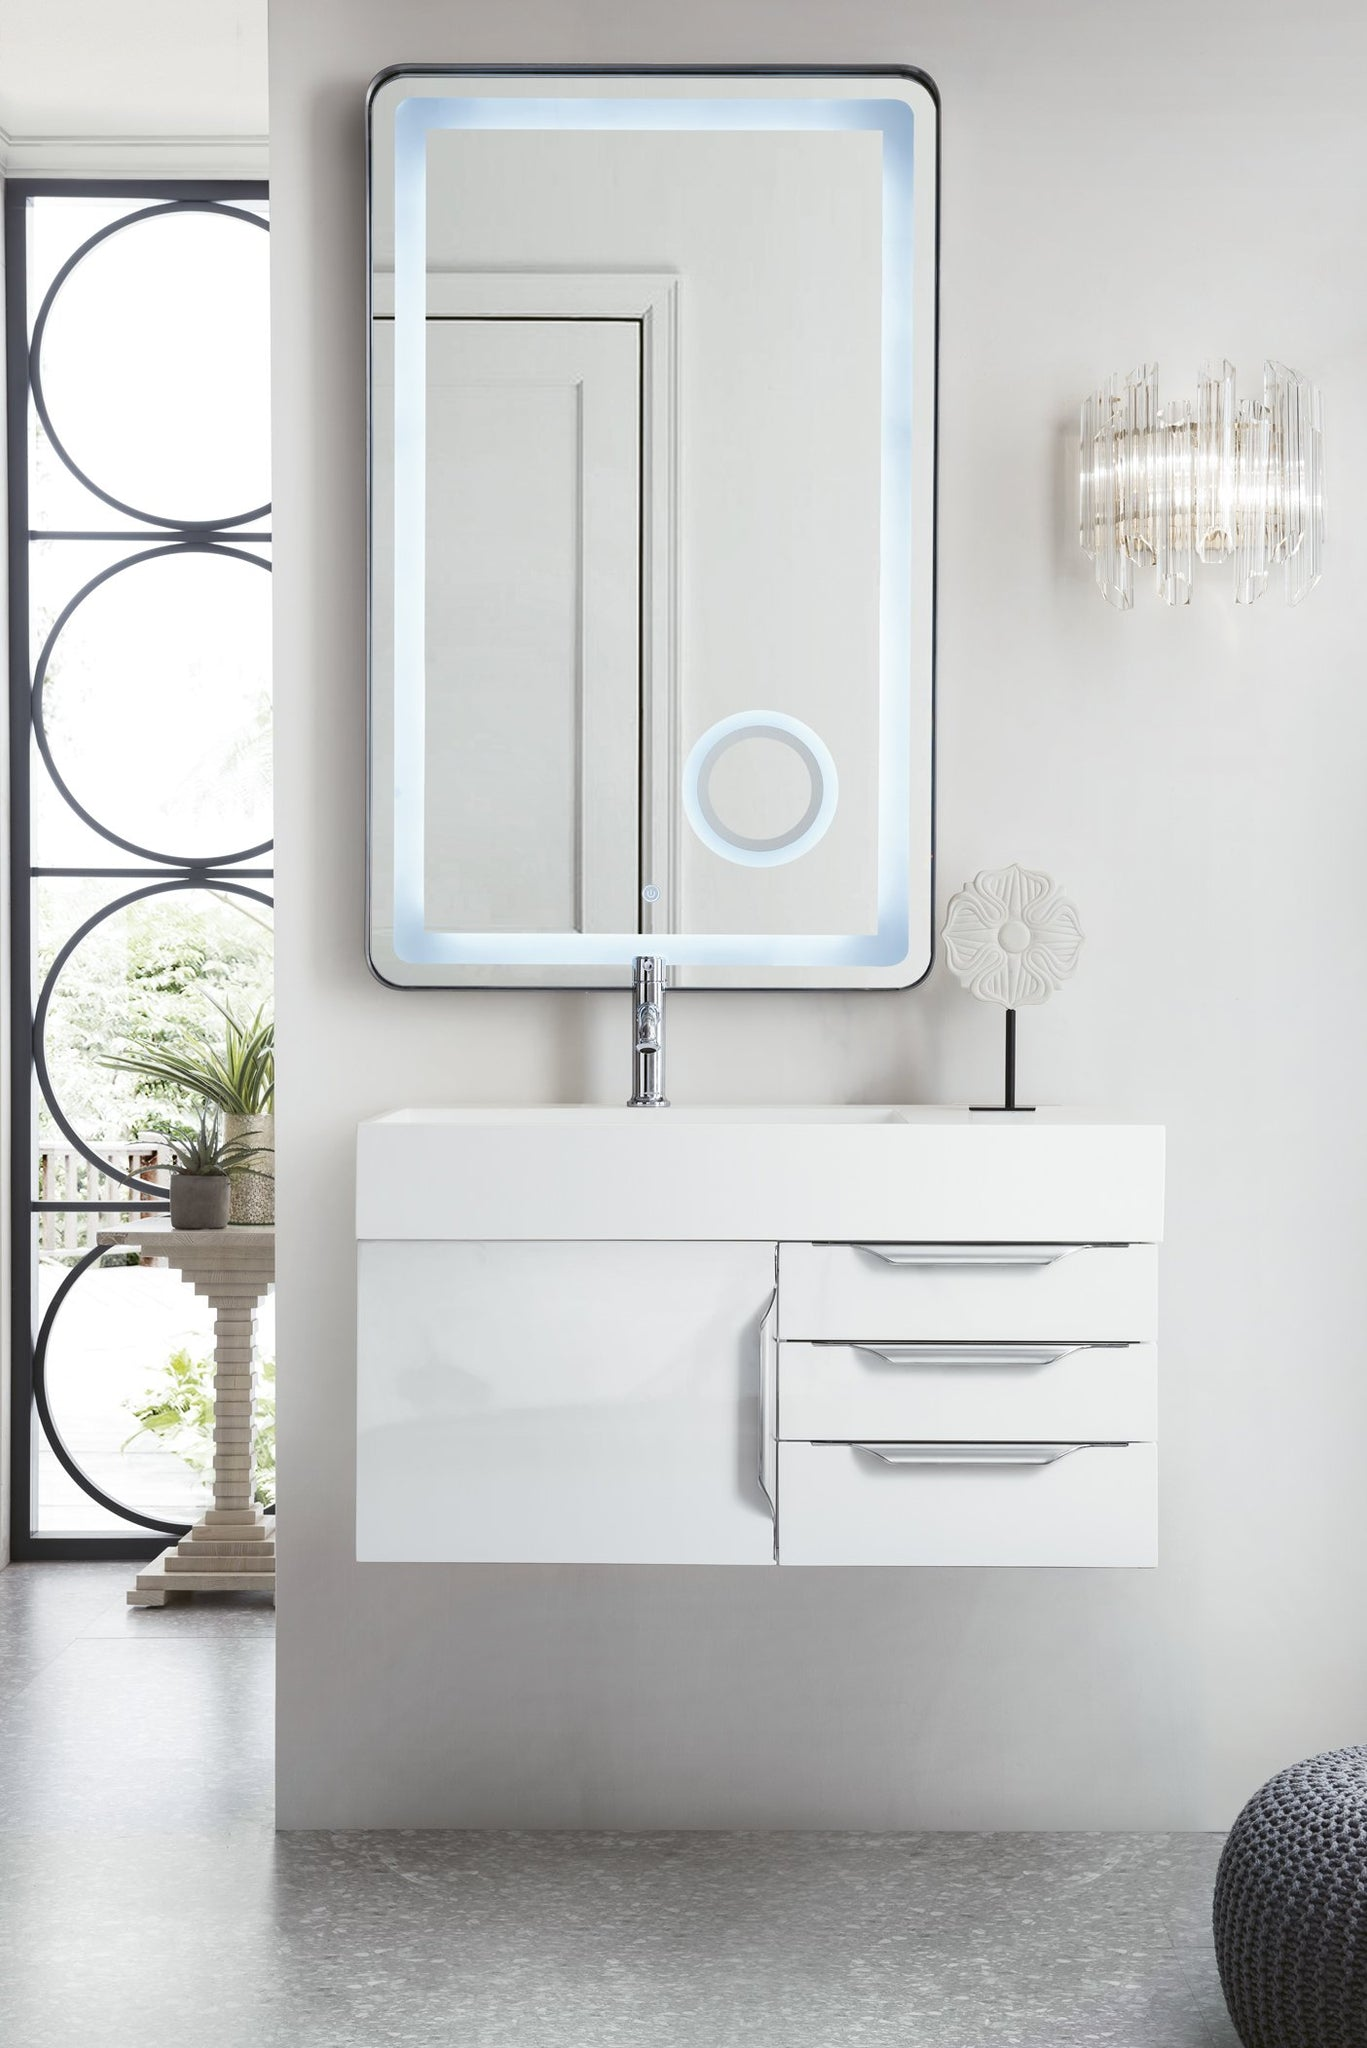 "Mercer Island 36"" Single Bathroom Vanity, Glossy White Single Bathroom Vanity James Martin Vanities"